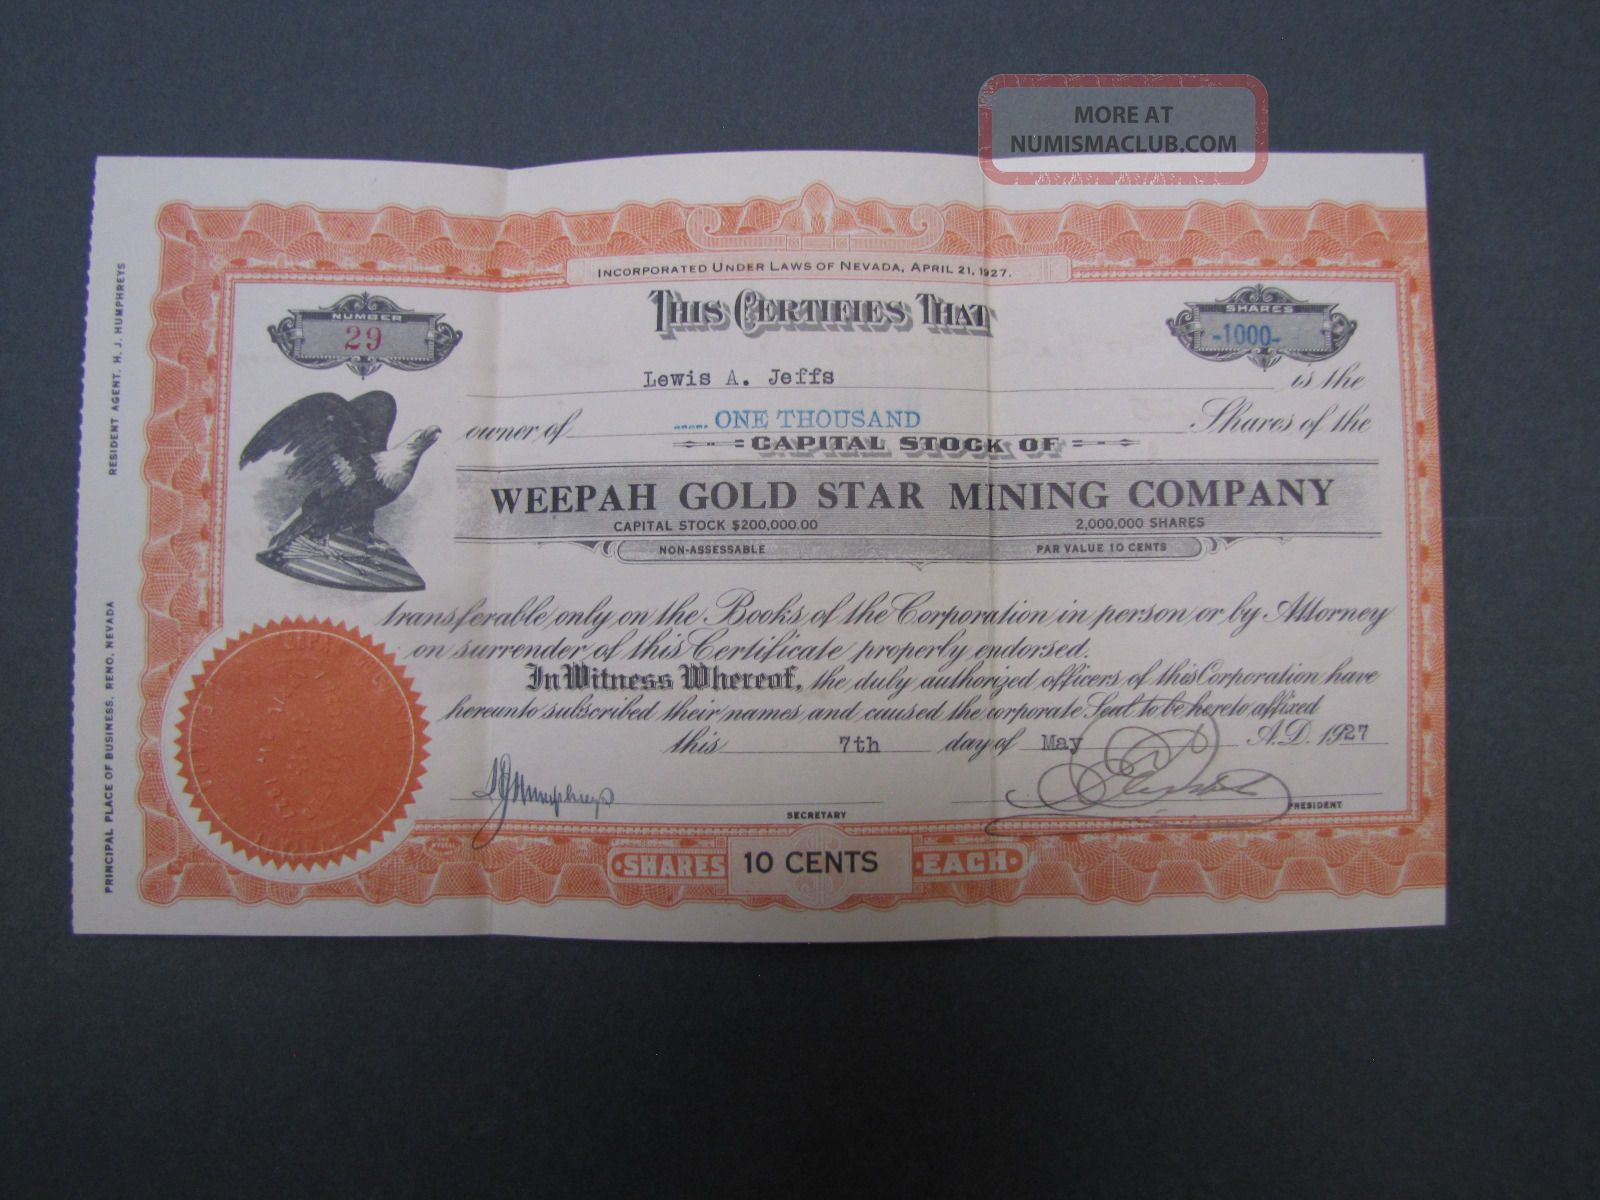 Old Gold Mining Stock Certificate Weepah Gold Star Mining Company Stocks & Bonds, Scripophily photo